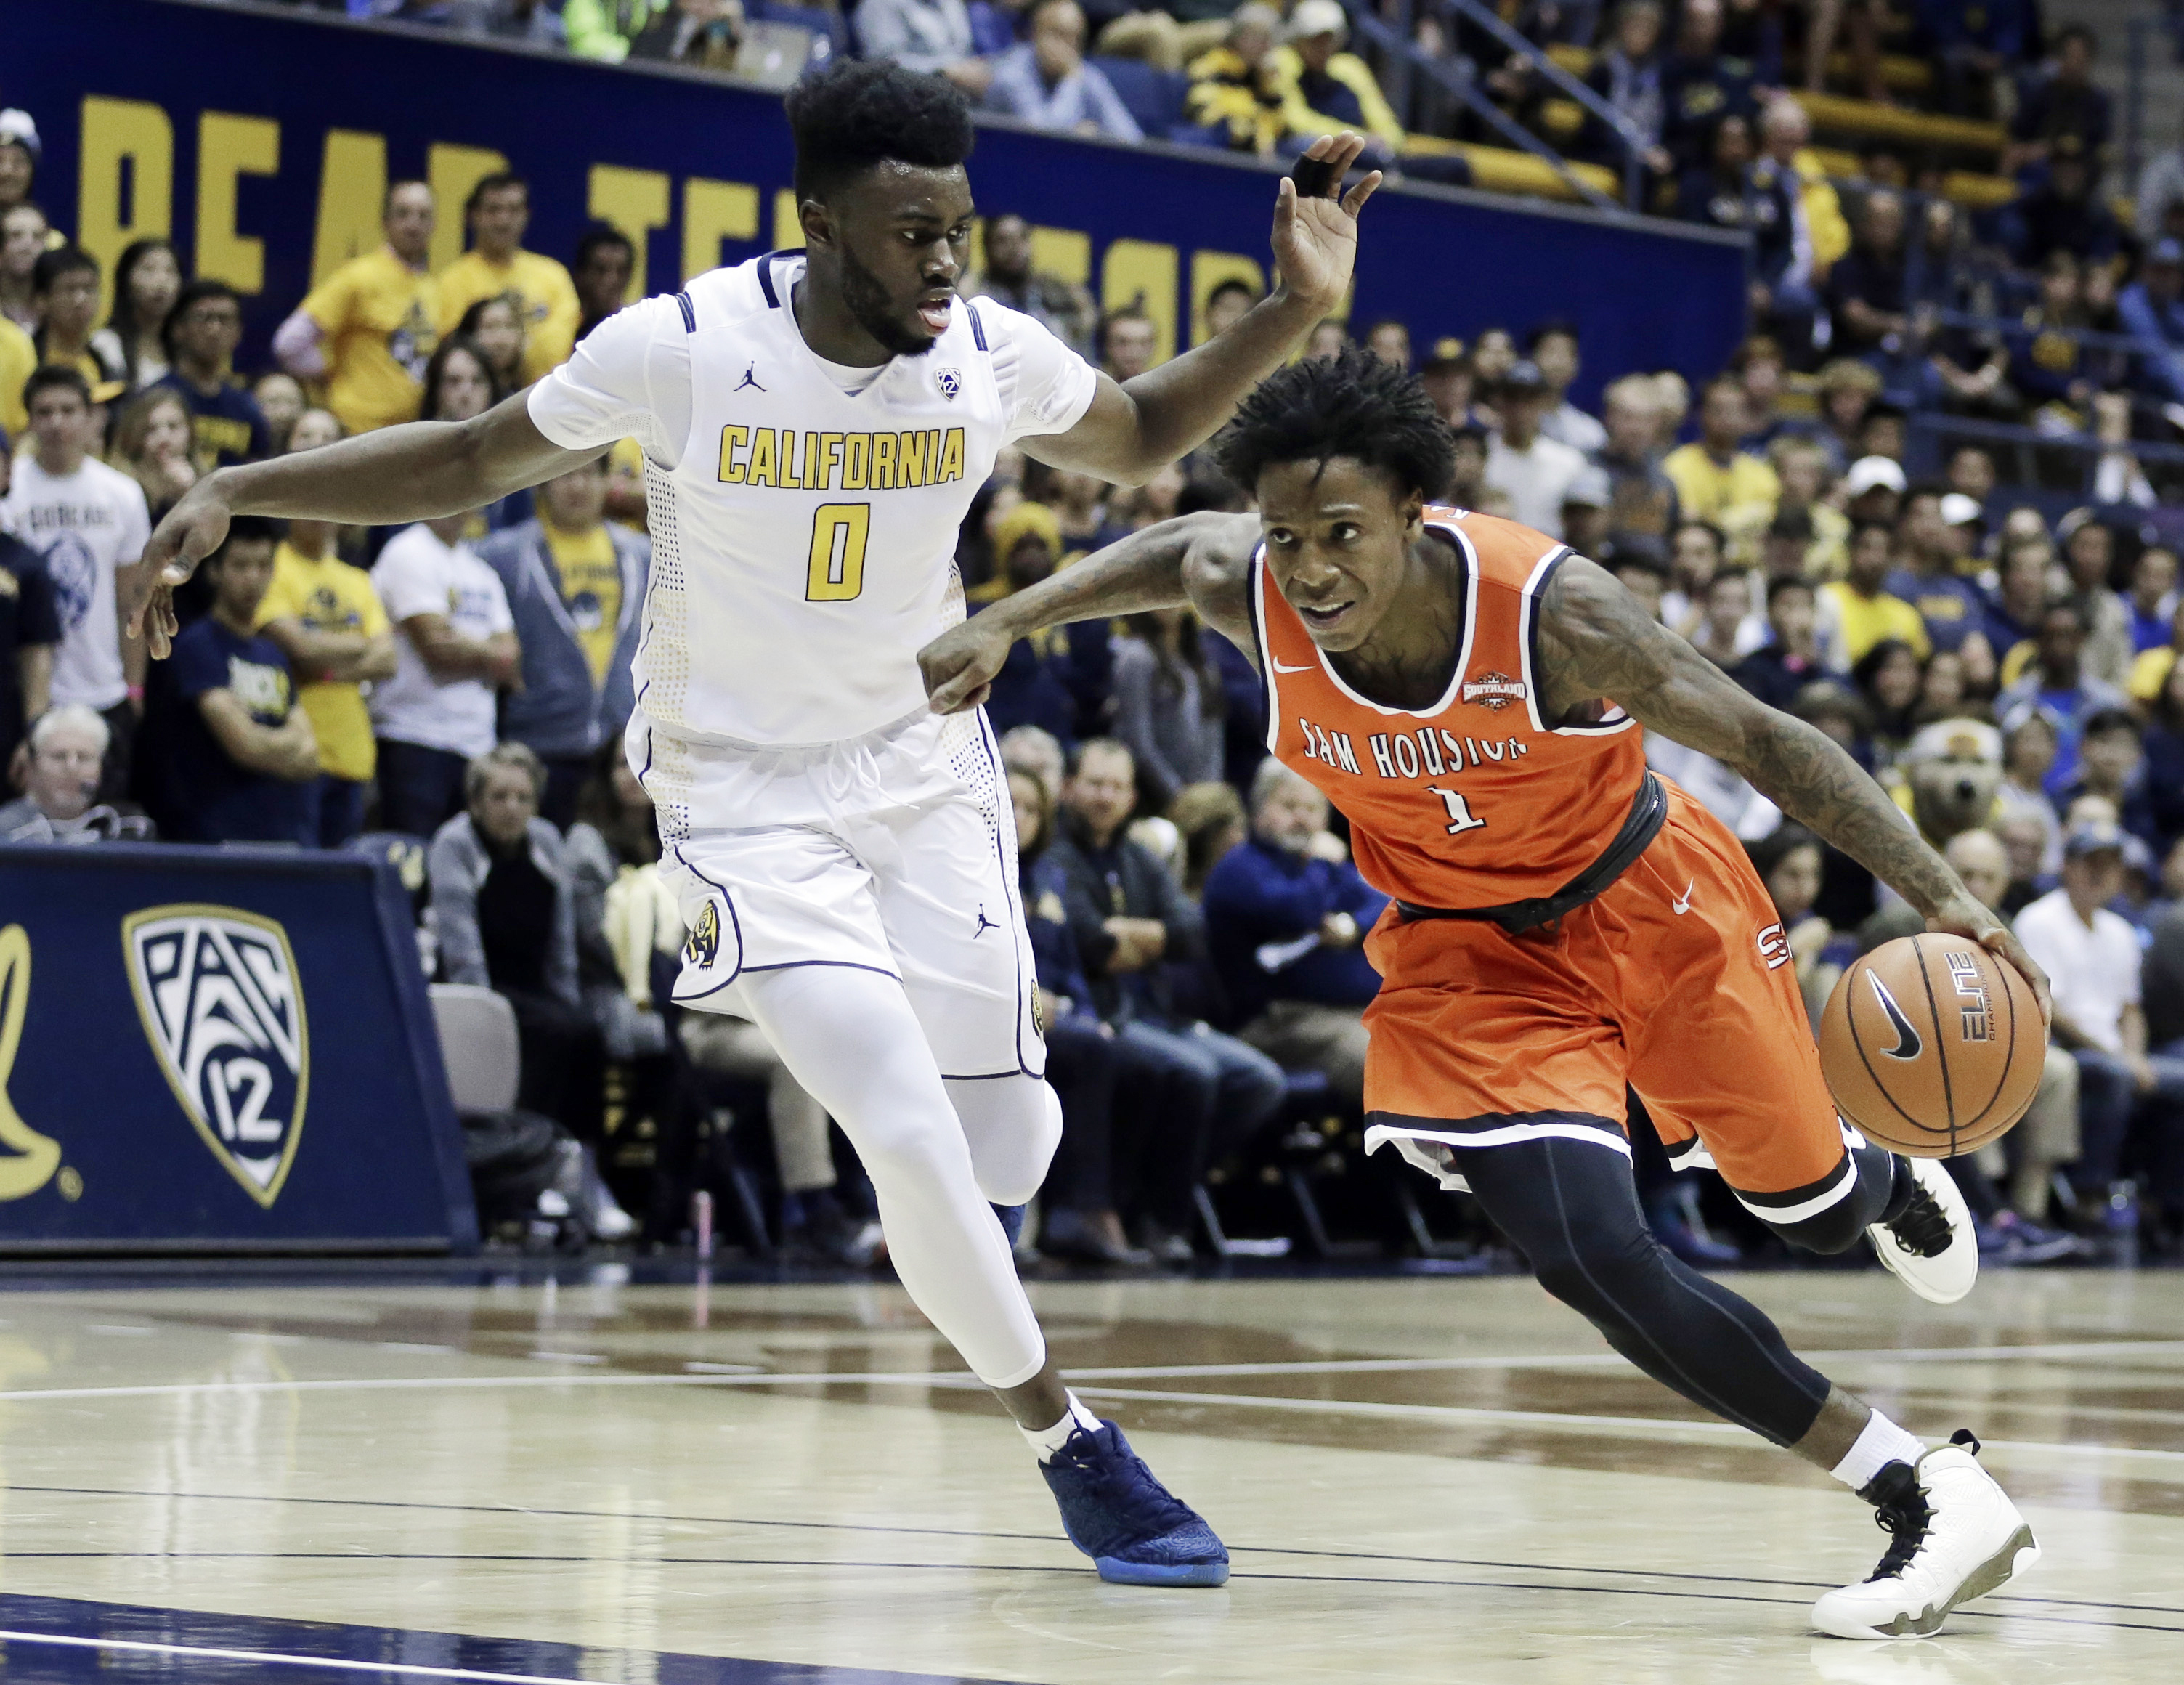 Sam Houston State's Ameer Jackson, right, drives the ball past California's Jaylen Brown (0) in the first half of an NCAA college basketball game Monday, Nov. 23, 2015, in Berkeley, Calif. (AP Photo/Ben Margot)